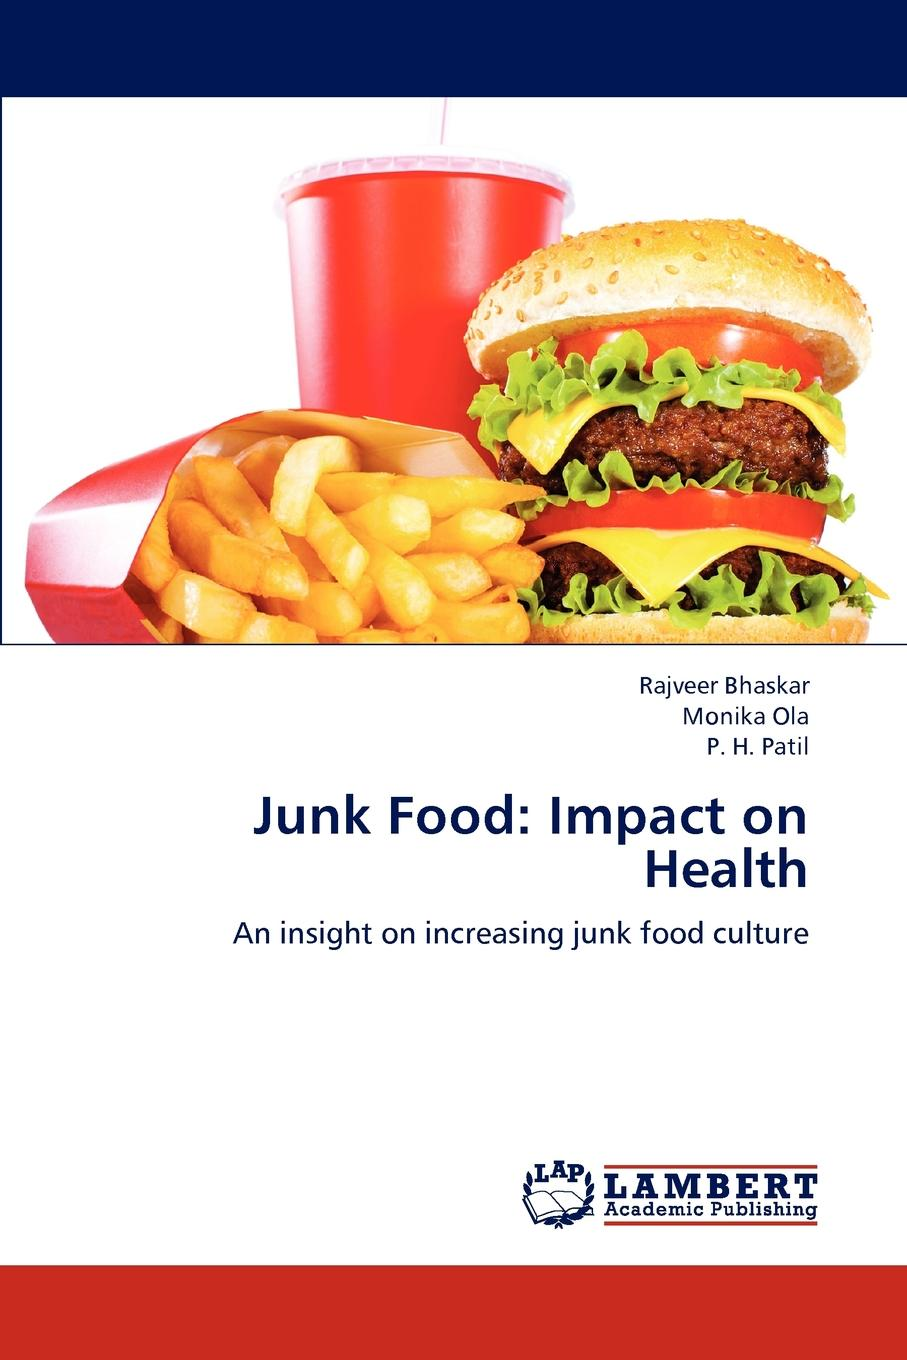 Bhaskar Rajveer, Ola Monika, Patil P. H. Junk Food. Impact on Health майка классическая printio junk food gang